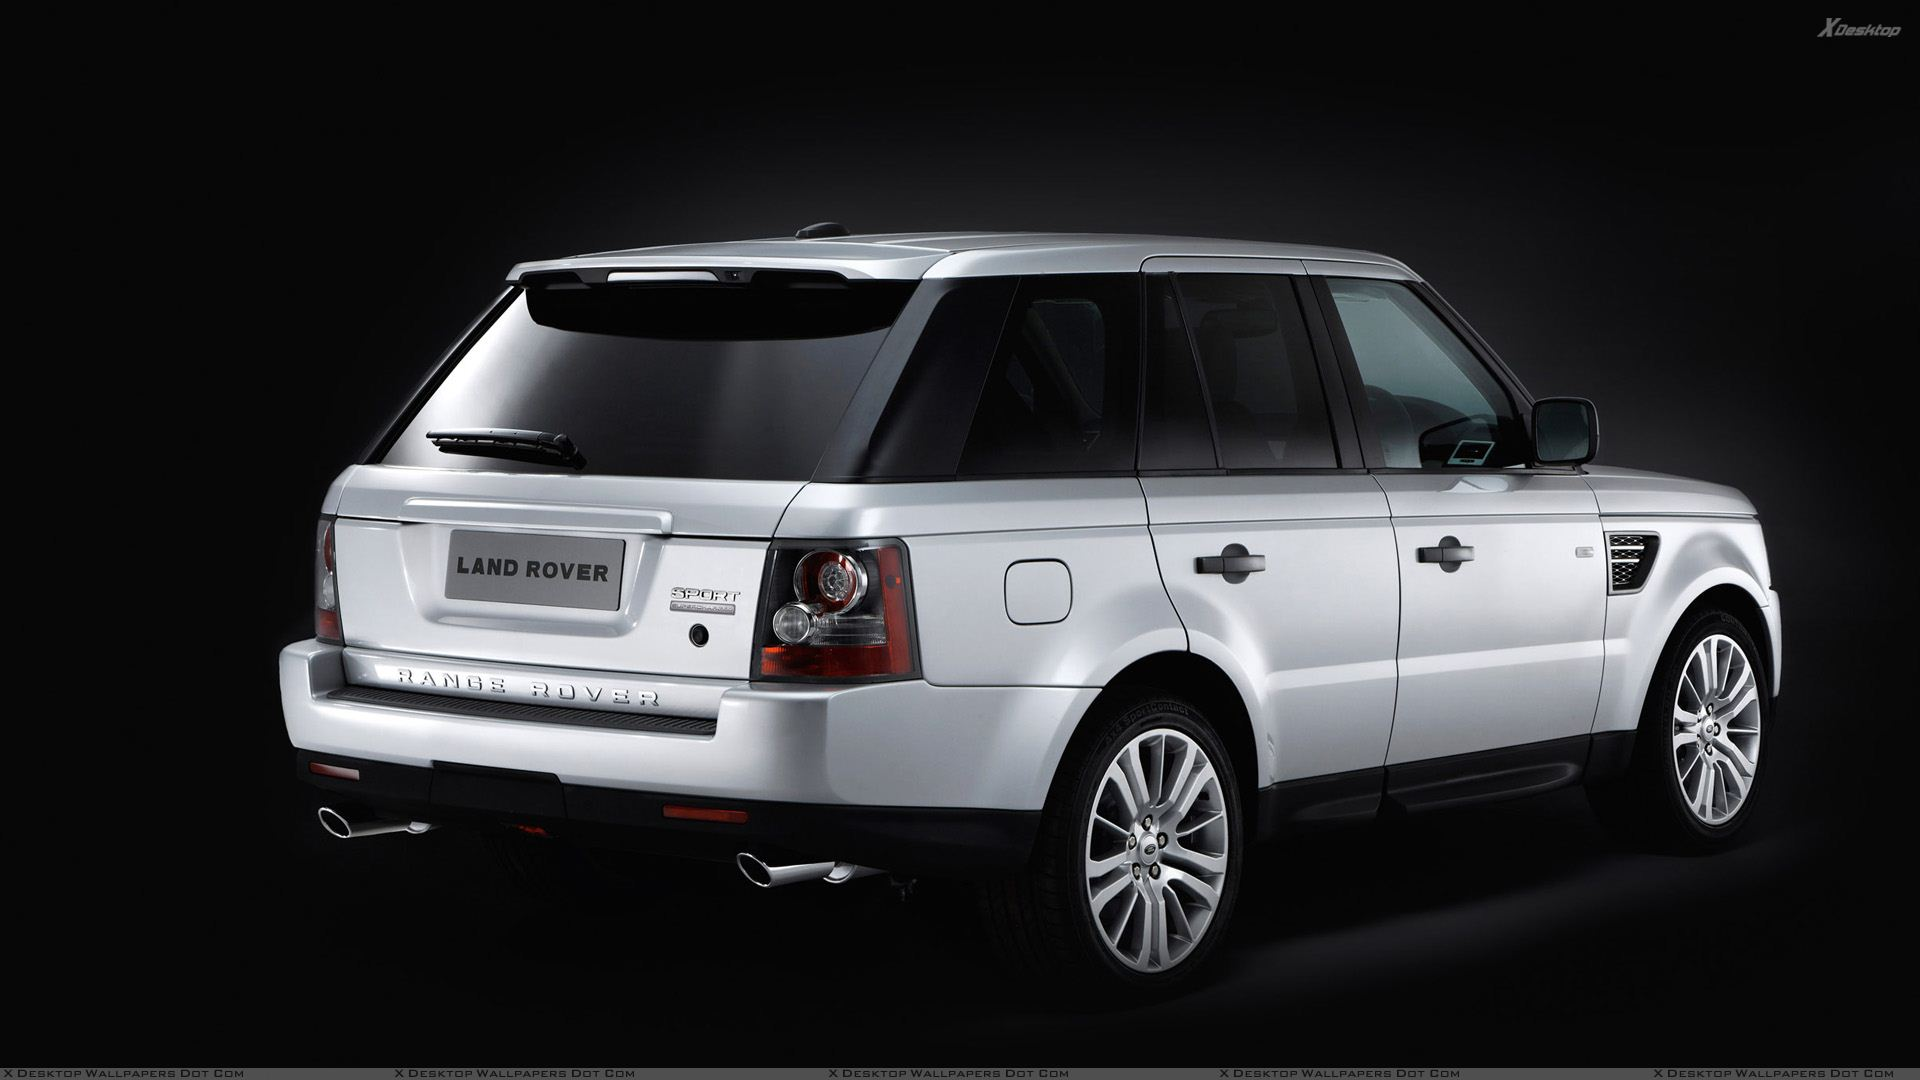 2010 range rover sport side back pose in white n black. Black Bedroom Furniture Sets. Home Design Ideas